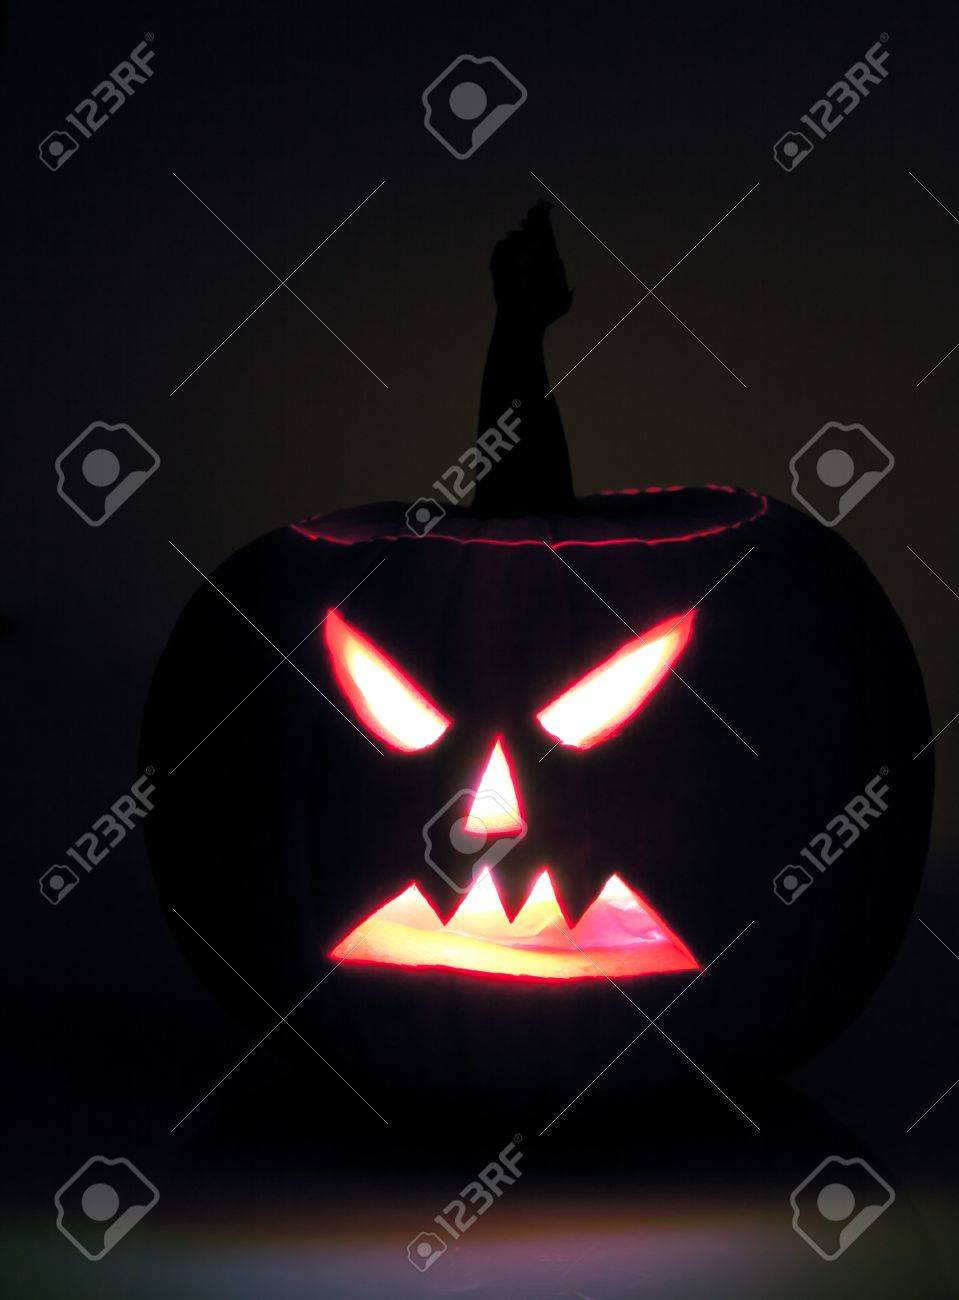 Halloween Scary Jack O Lantern Pumpkin Faces Stock Photo Picture And Royalty Free Image Image 10541577